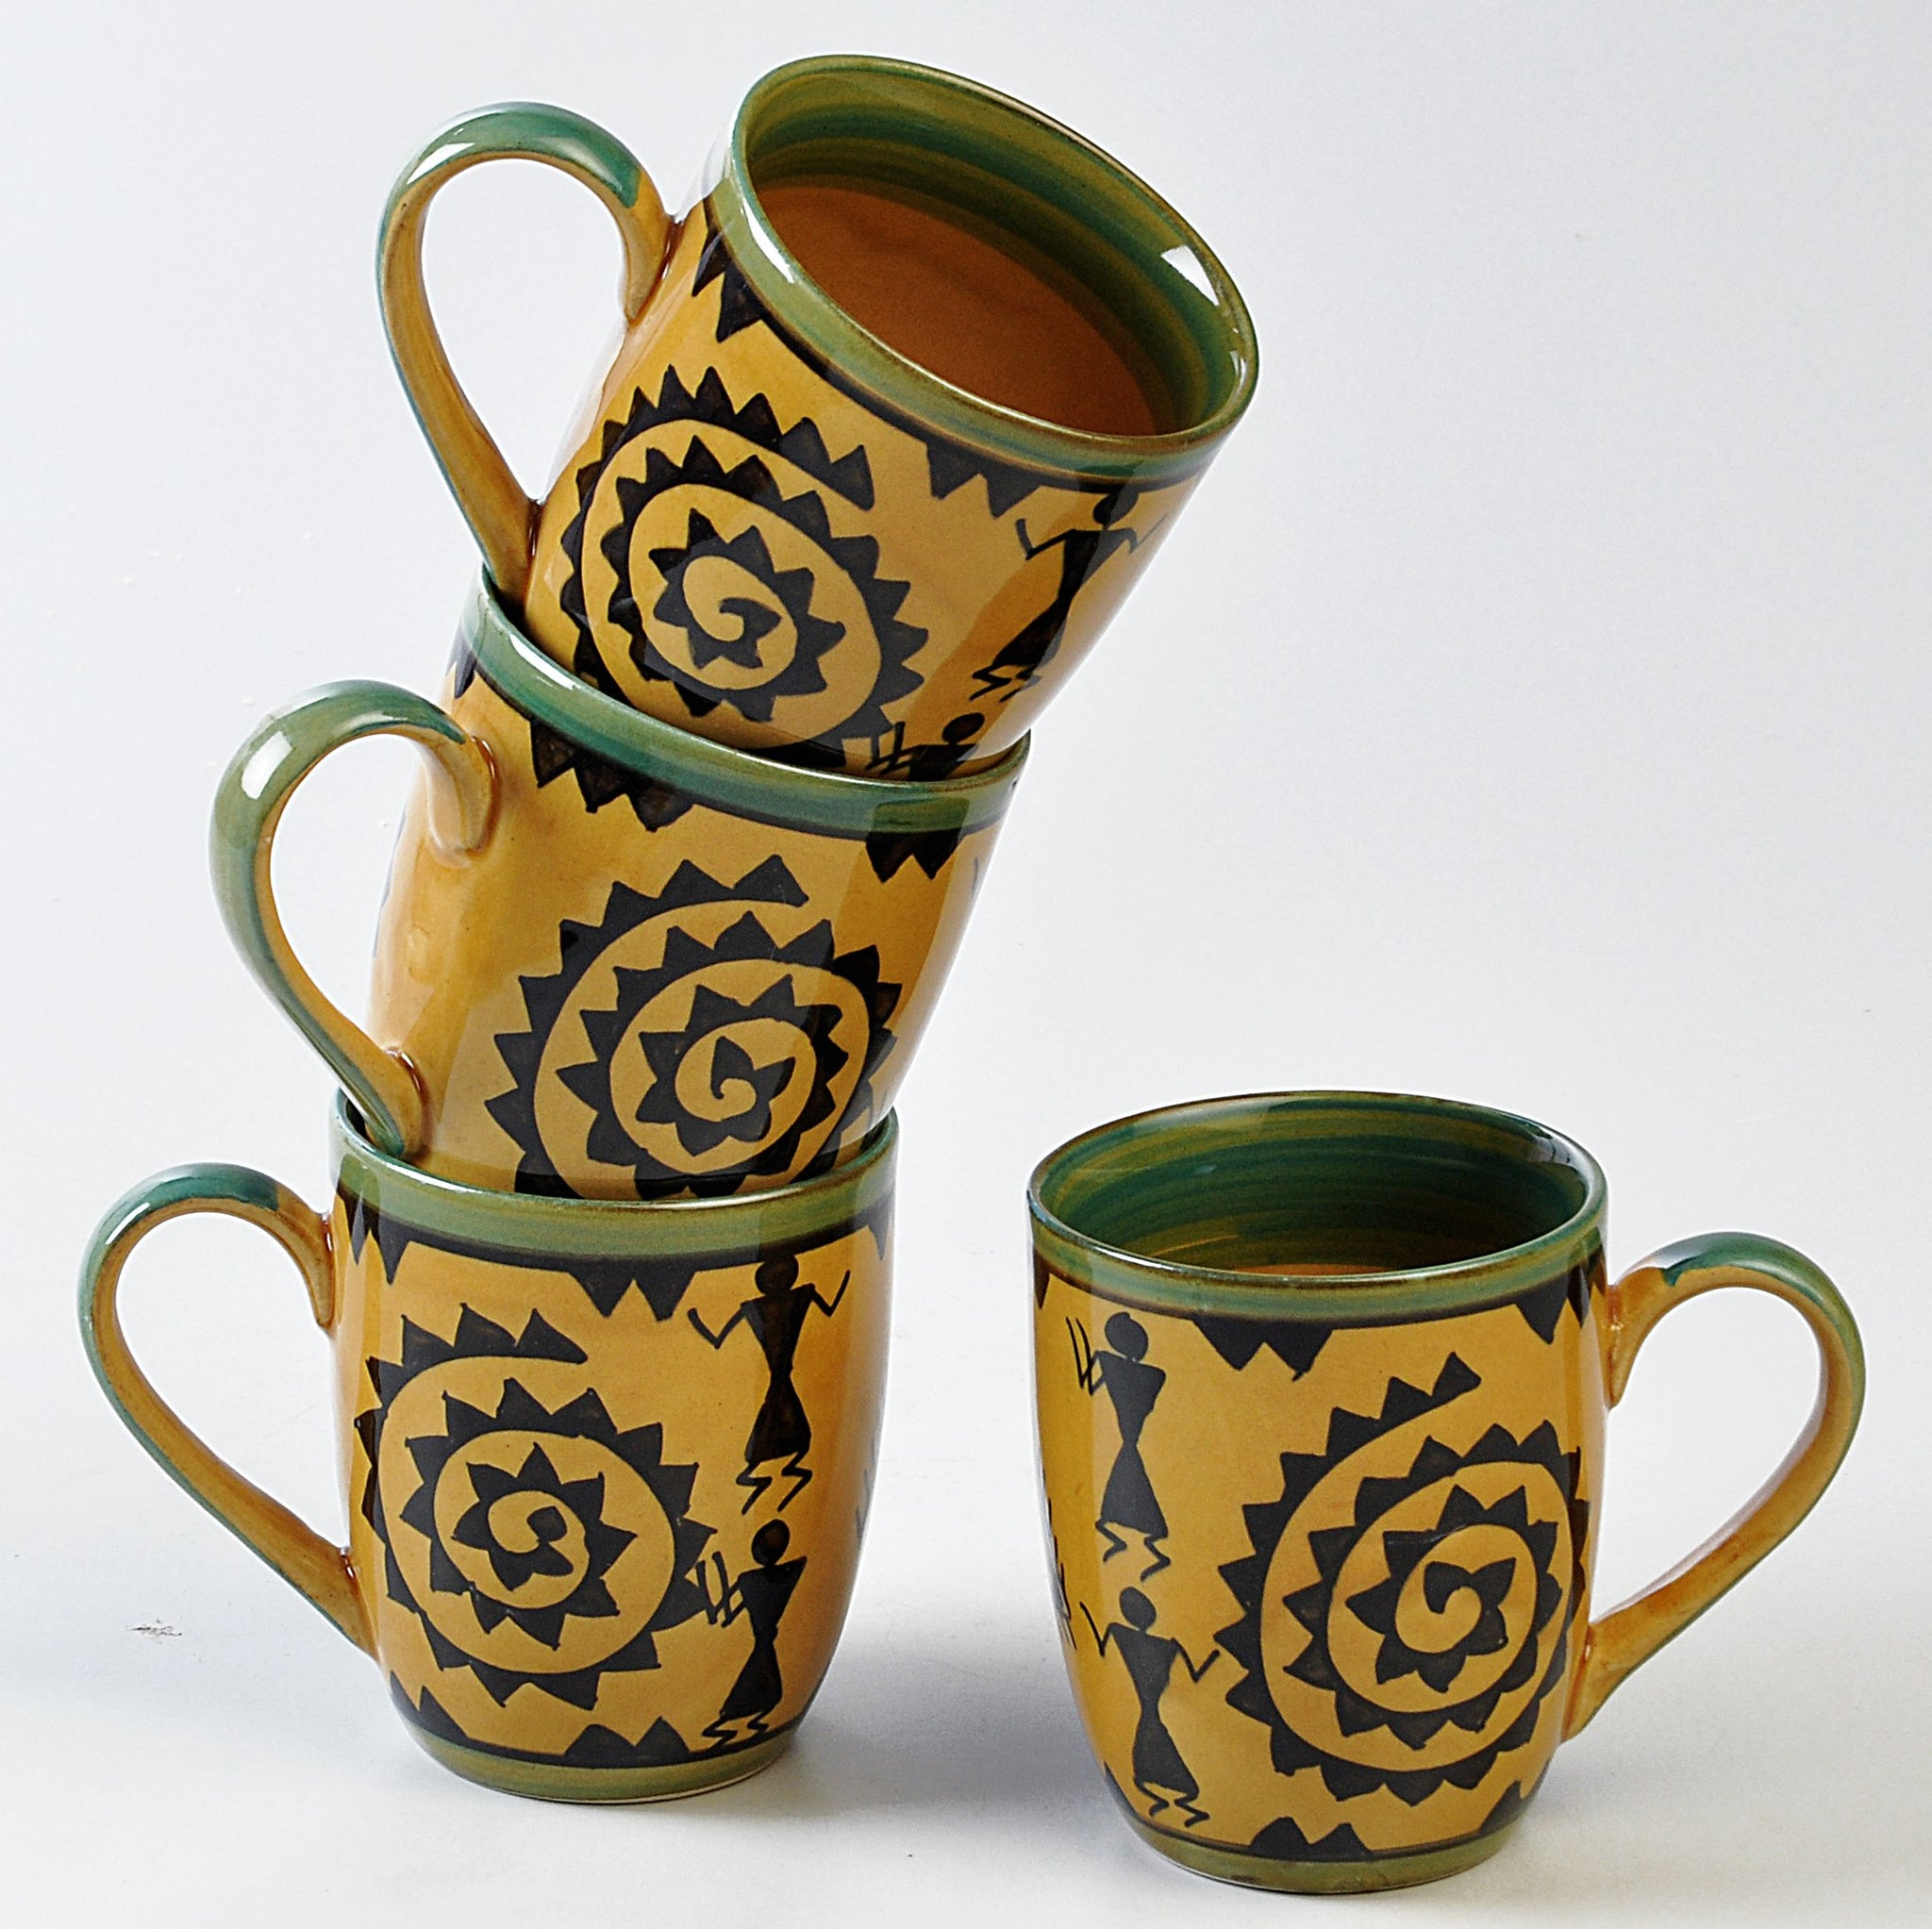 warli-green-milk-mugs-dec5024